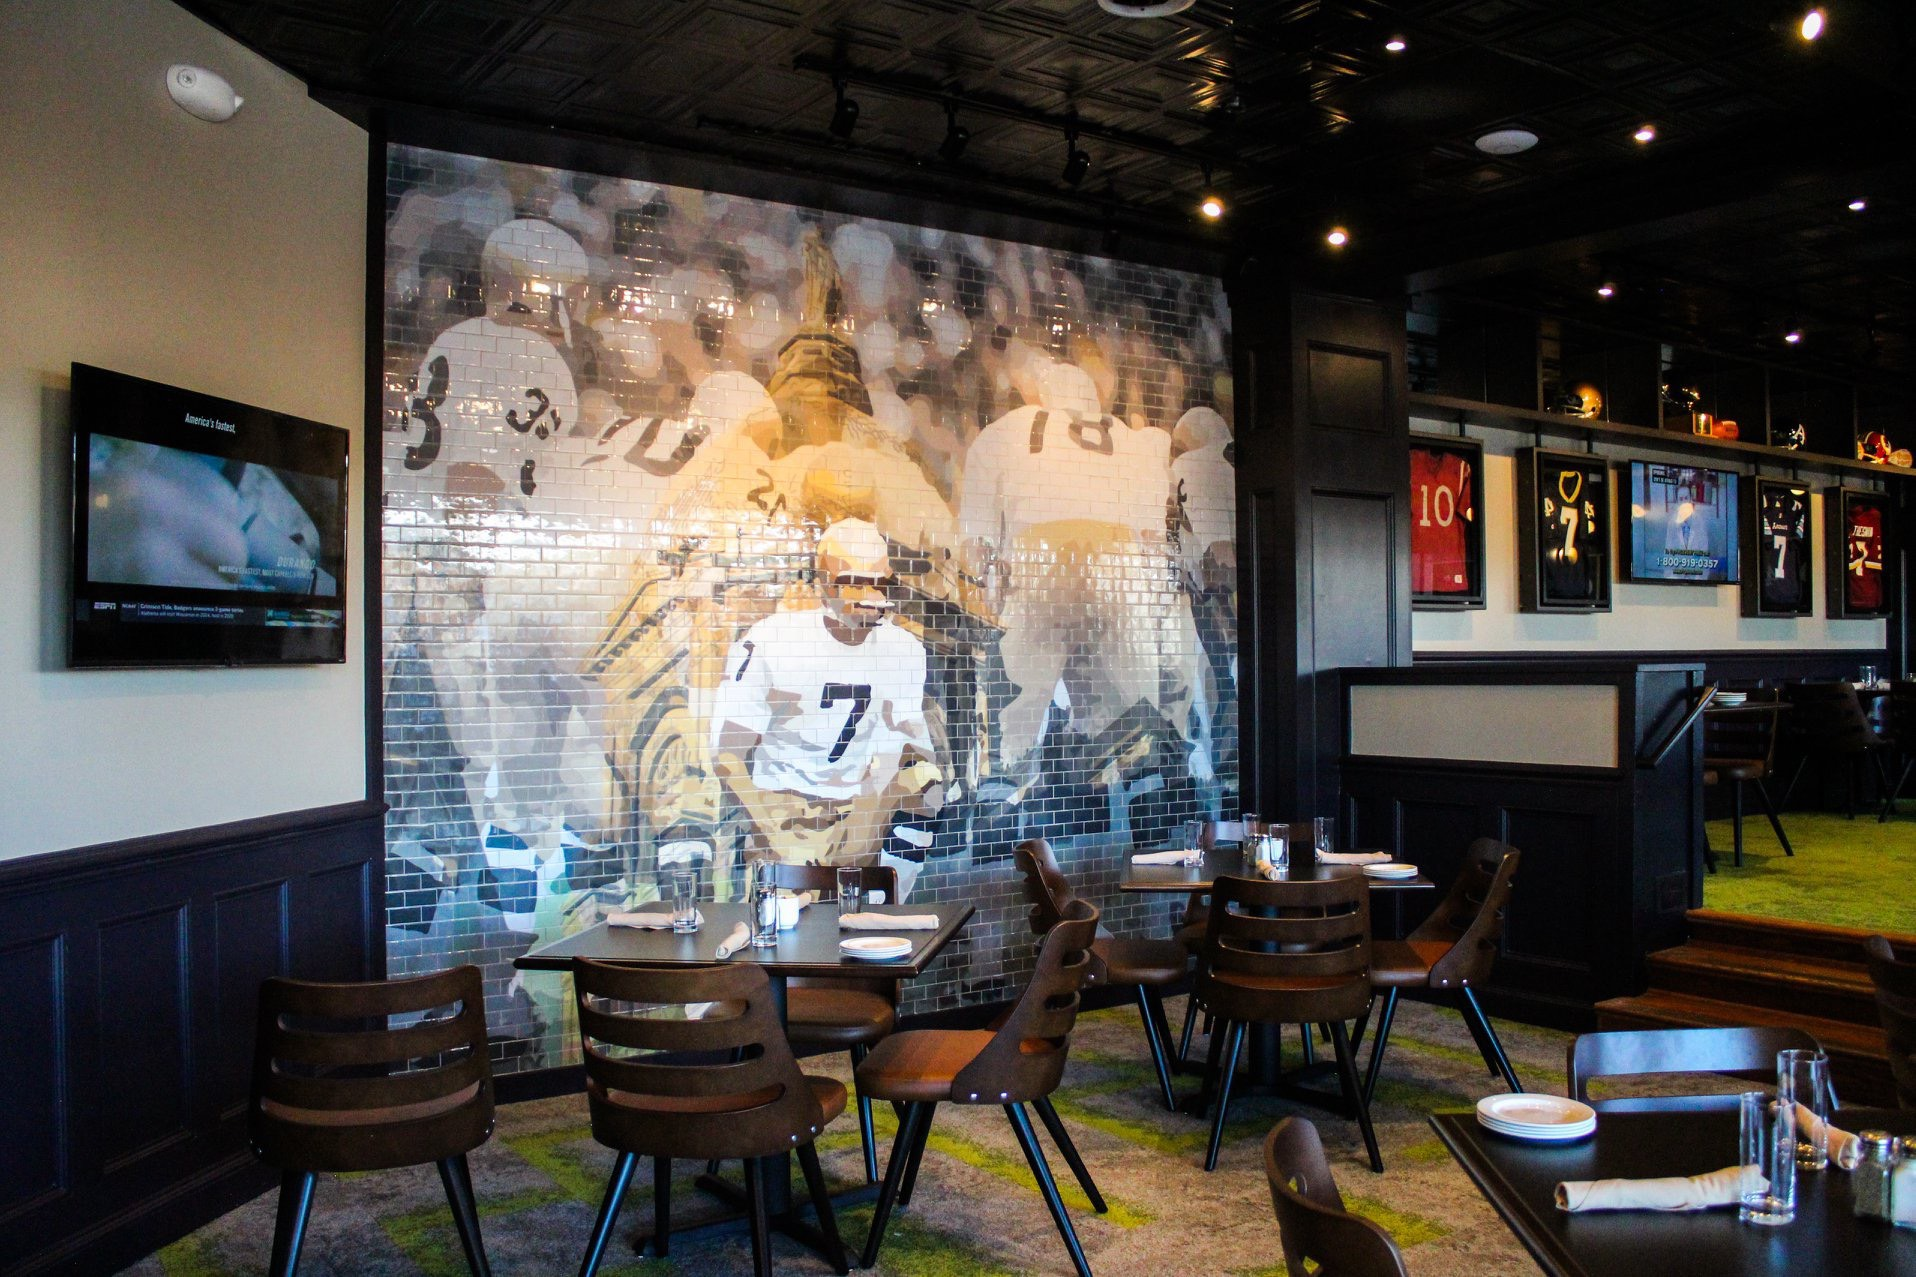 Joe Theismann's Renovated Sports Bar Scores a New Menu With Reuben Fries